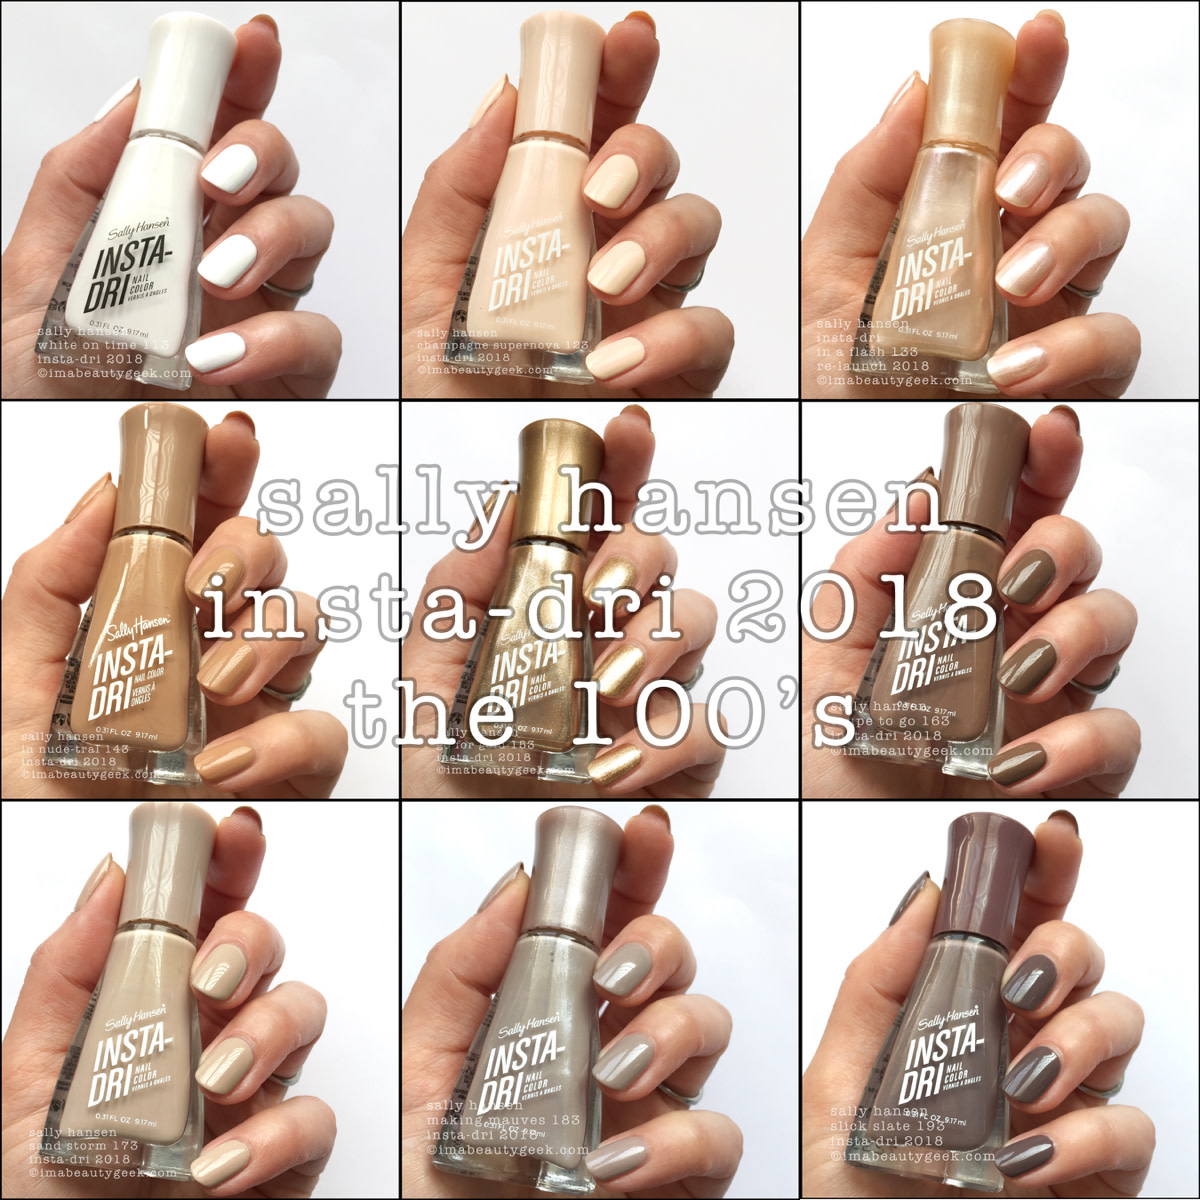 Sally Hansen Insta-Dri 2018 Relaunch Part 1 of 5